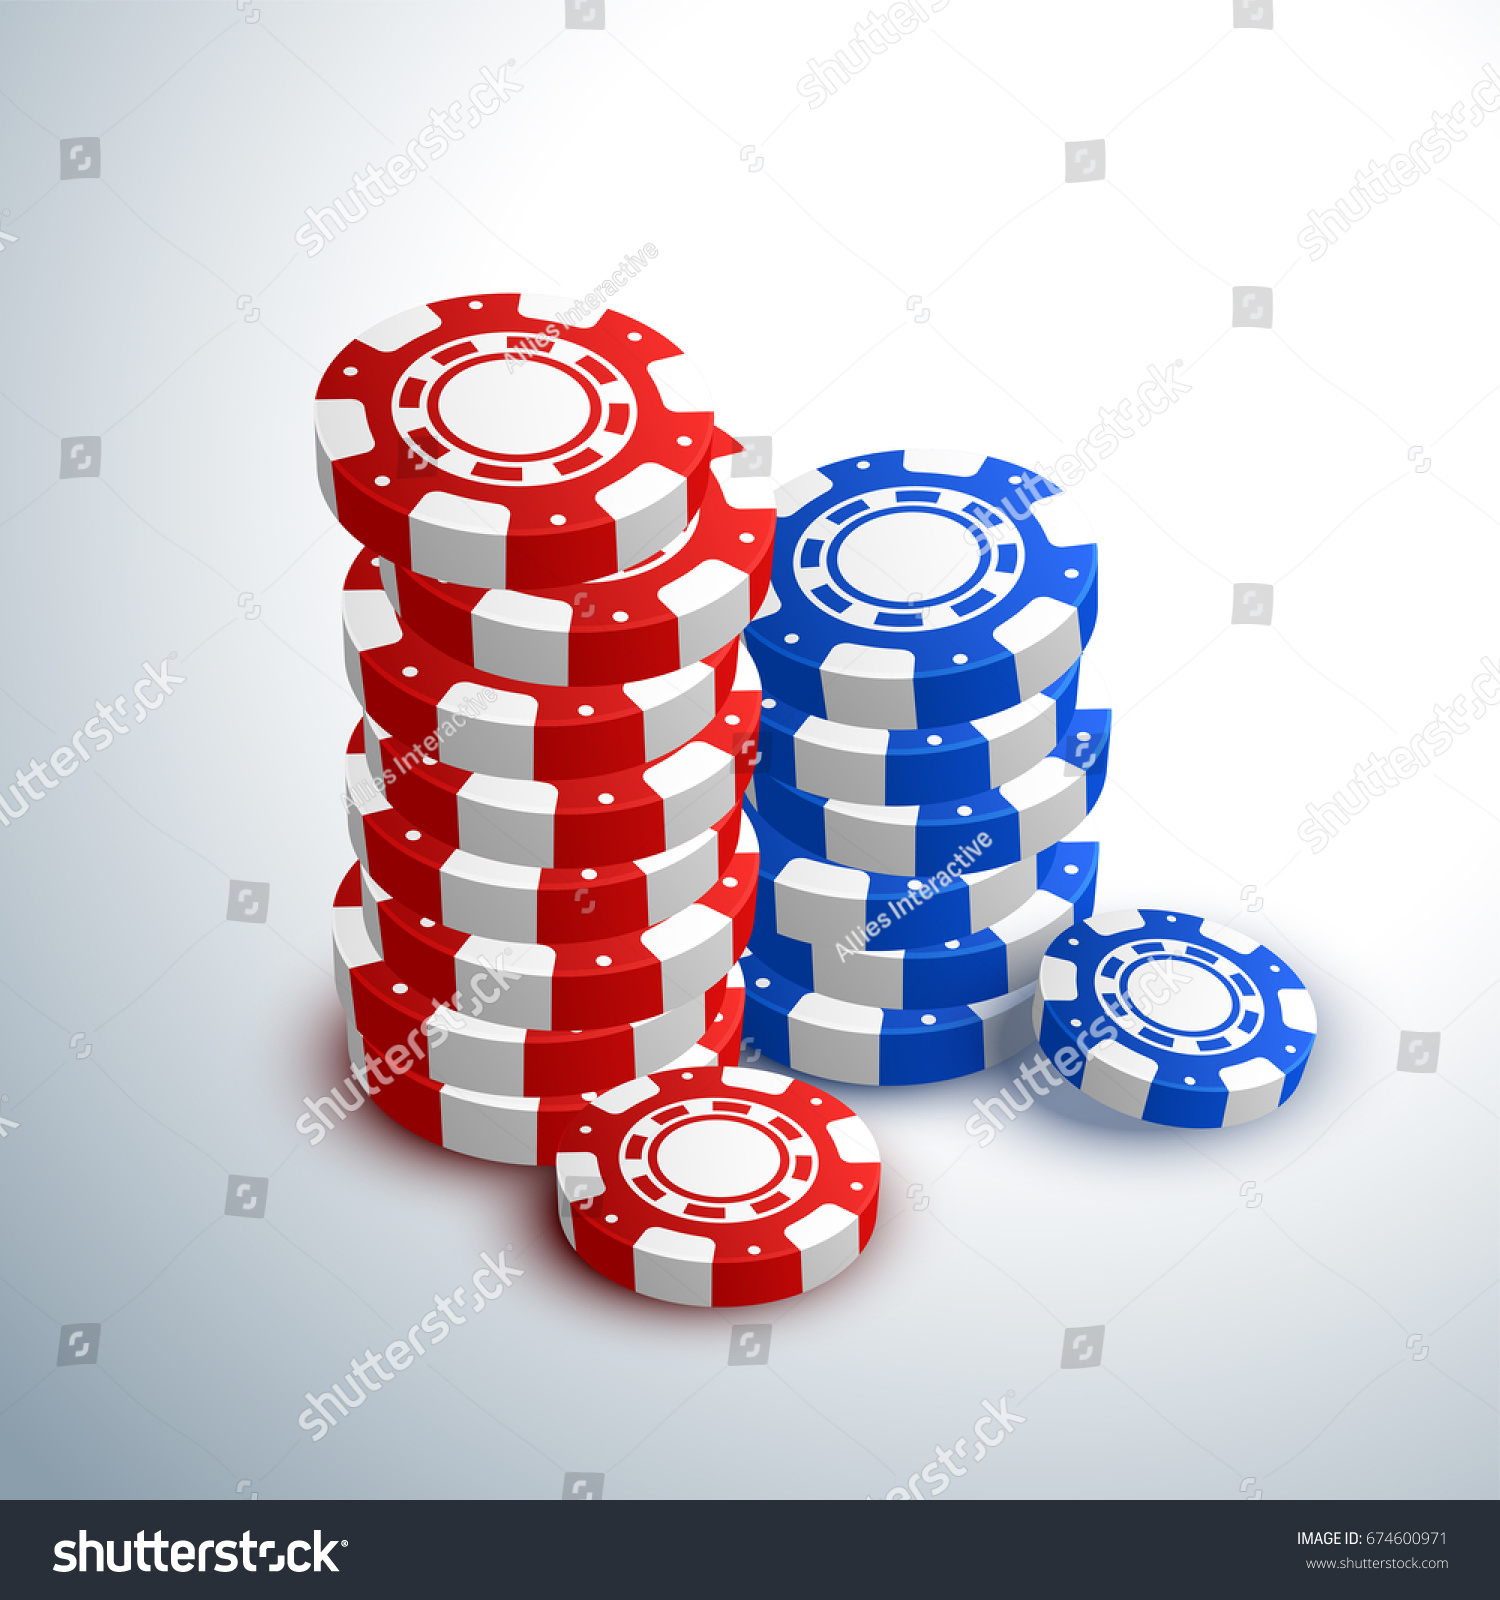 3d Poker Chips Stacks On Shiny Stock Vector 674600971 - Shutterstock